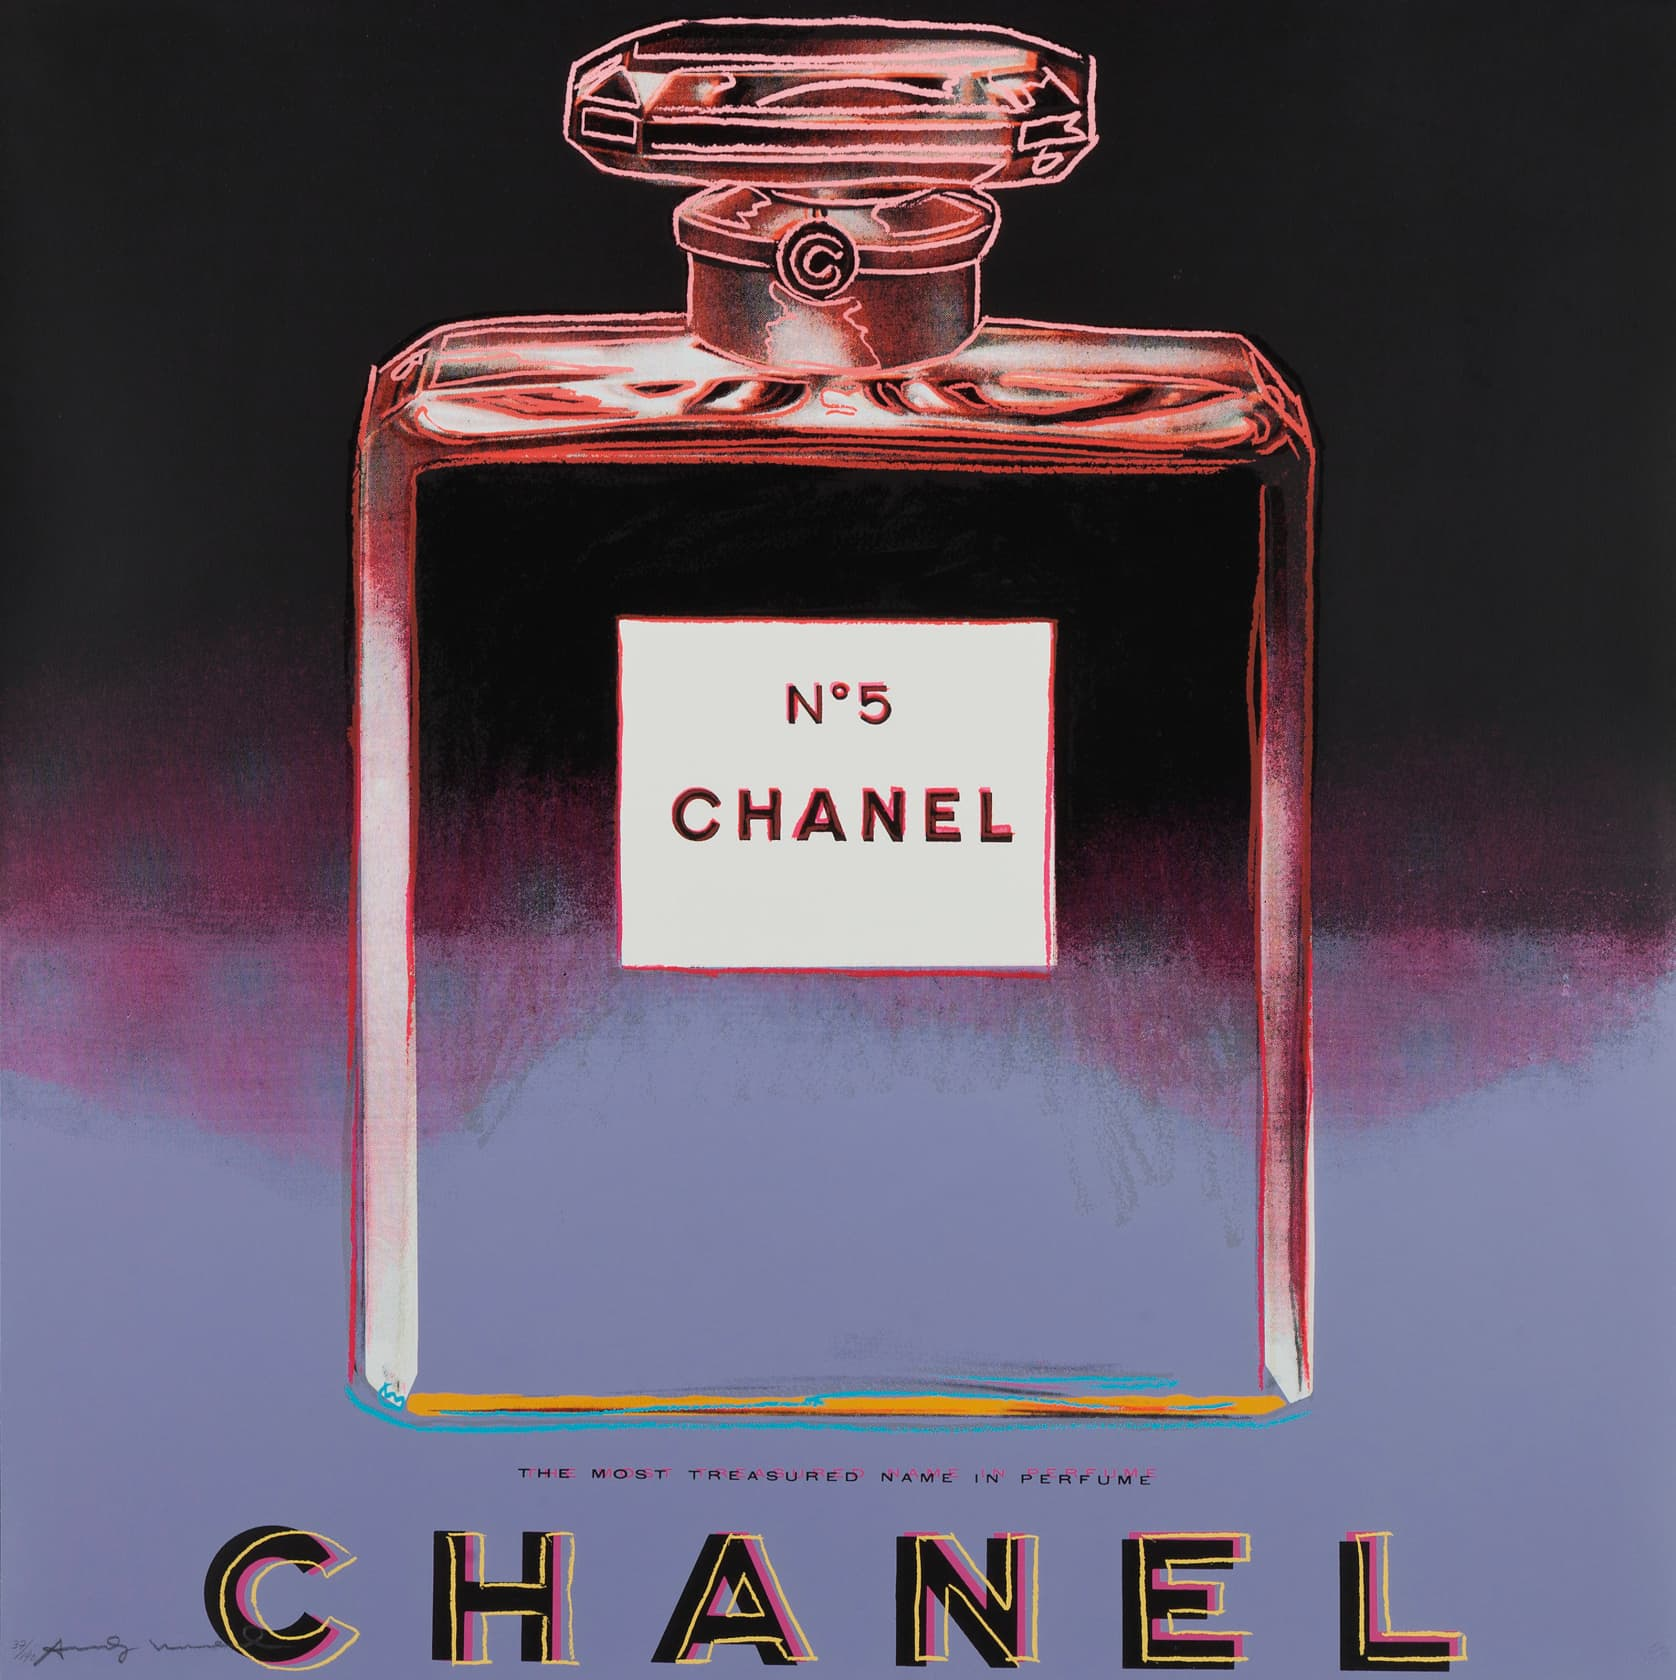 Andy Warhol, Chanel (from Ads), 1981